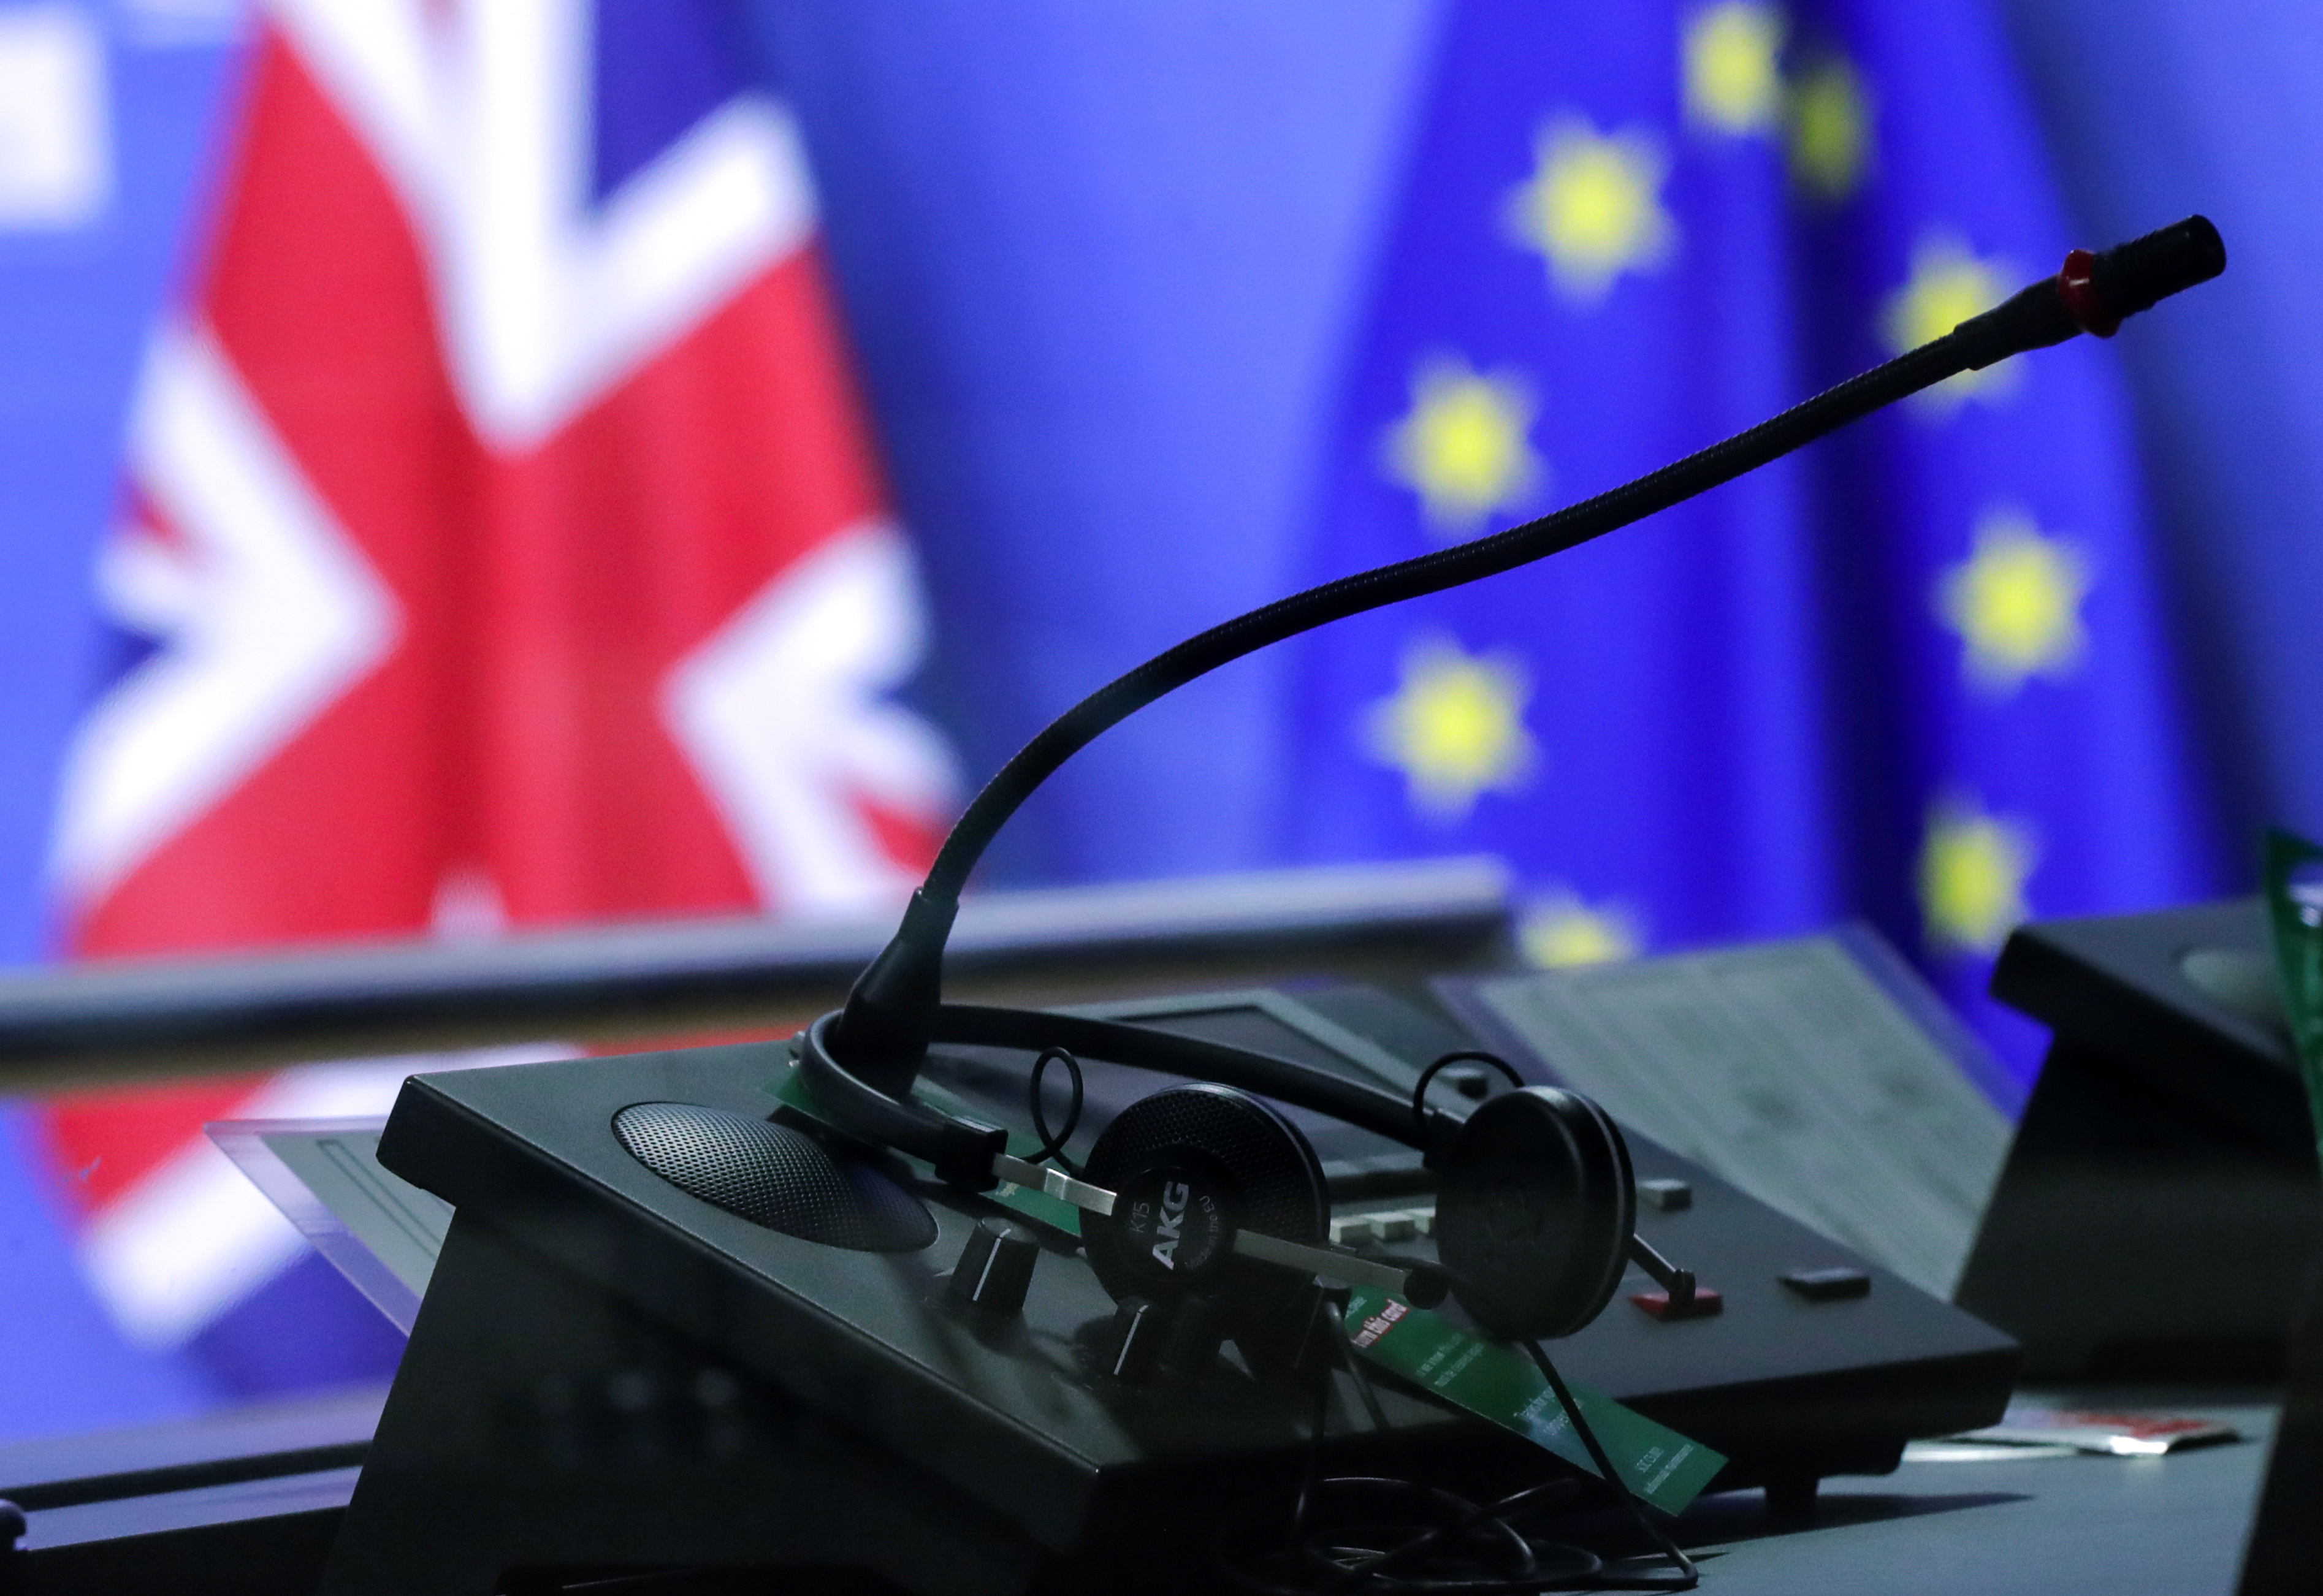 Flags of the Union Jack and European Union are seen through interpreters booth ahead of the meeting of European Commission President Ursula von der Leyen and British Prime Minister Boris Johnson, in Brussels, Belgium December 9, 2020. Olivier Hoslet/Pool via REUTERS